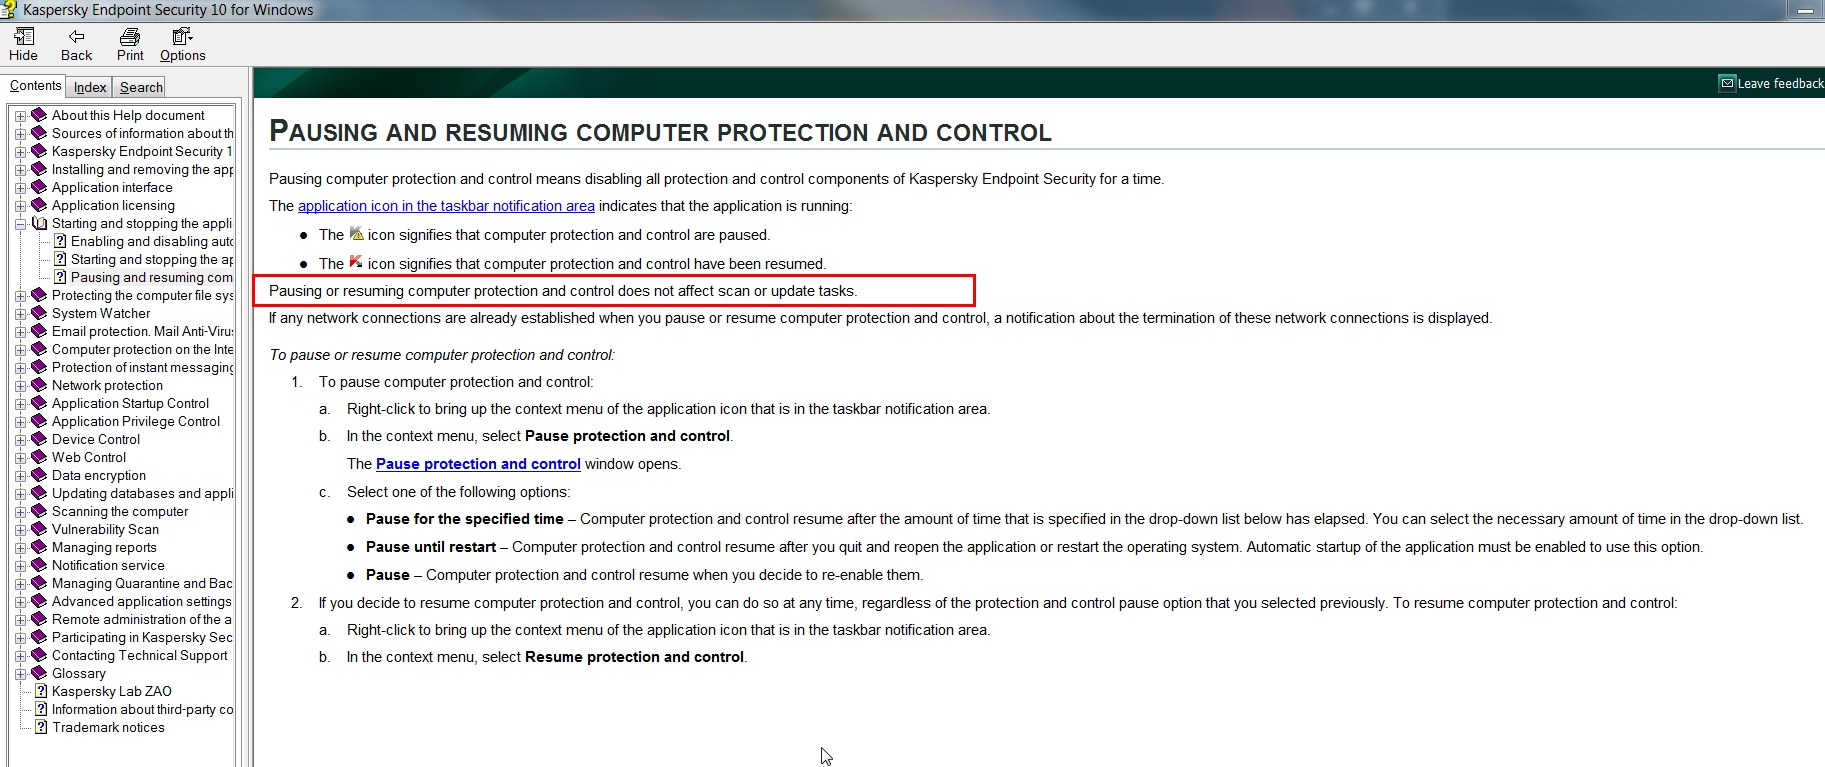 Kaspersky_Endpoint_Security_10_for_Windows_20150409_11-40-39.jpg